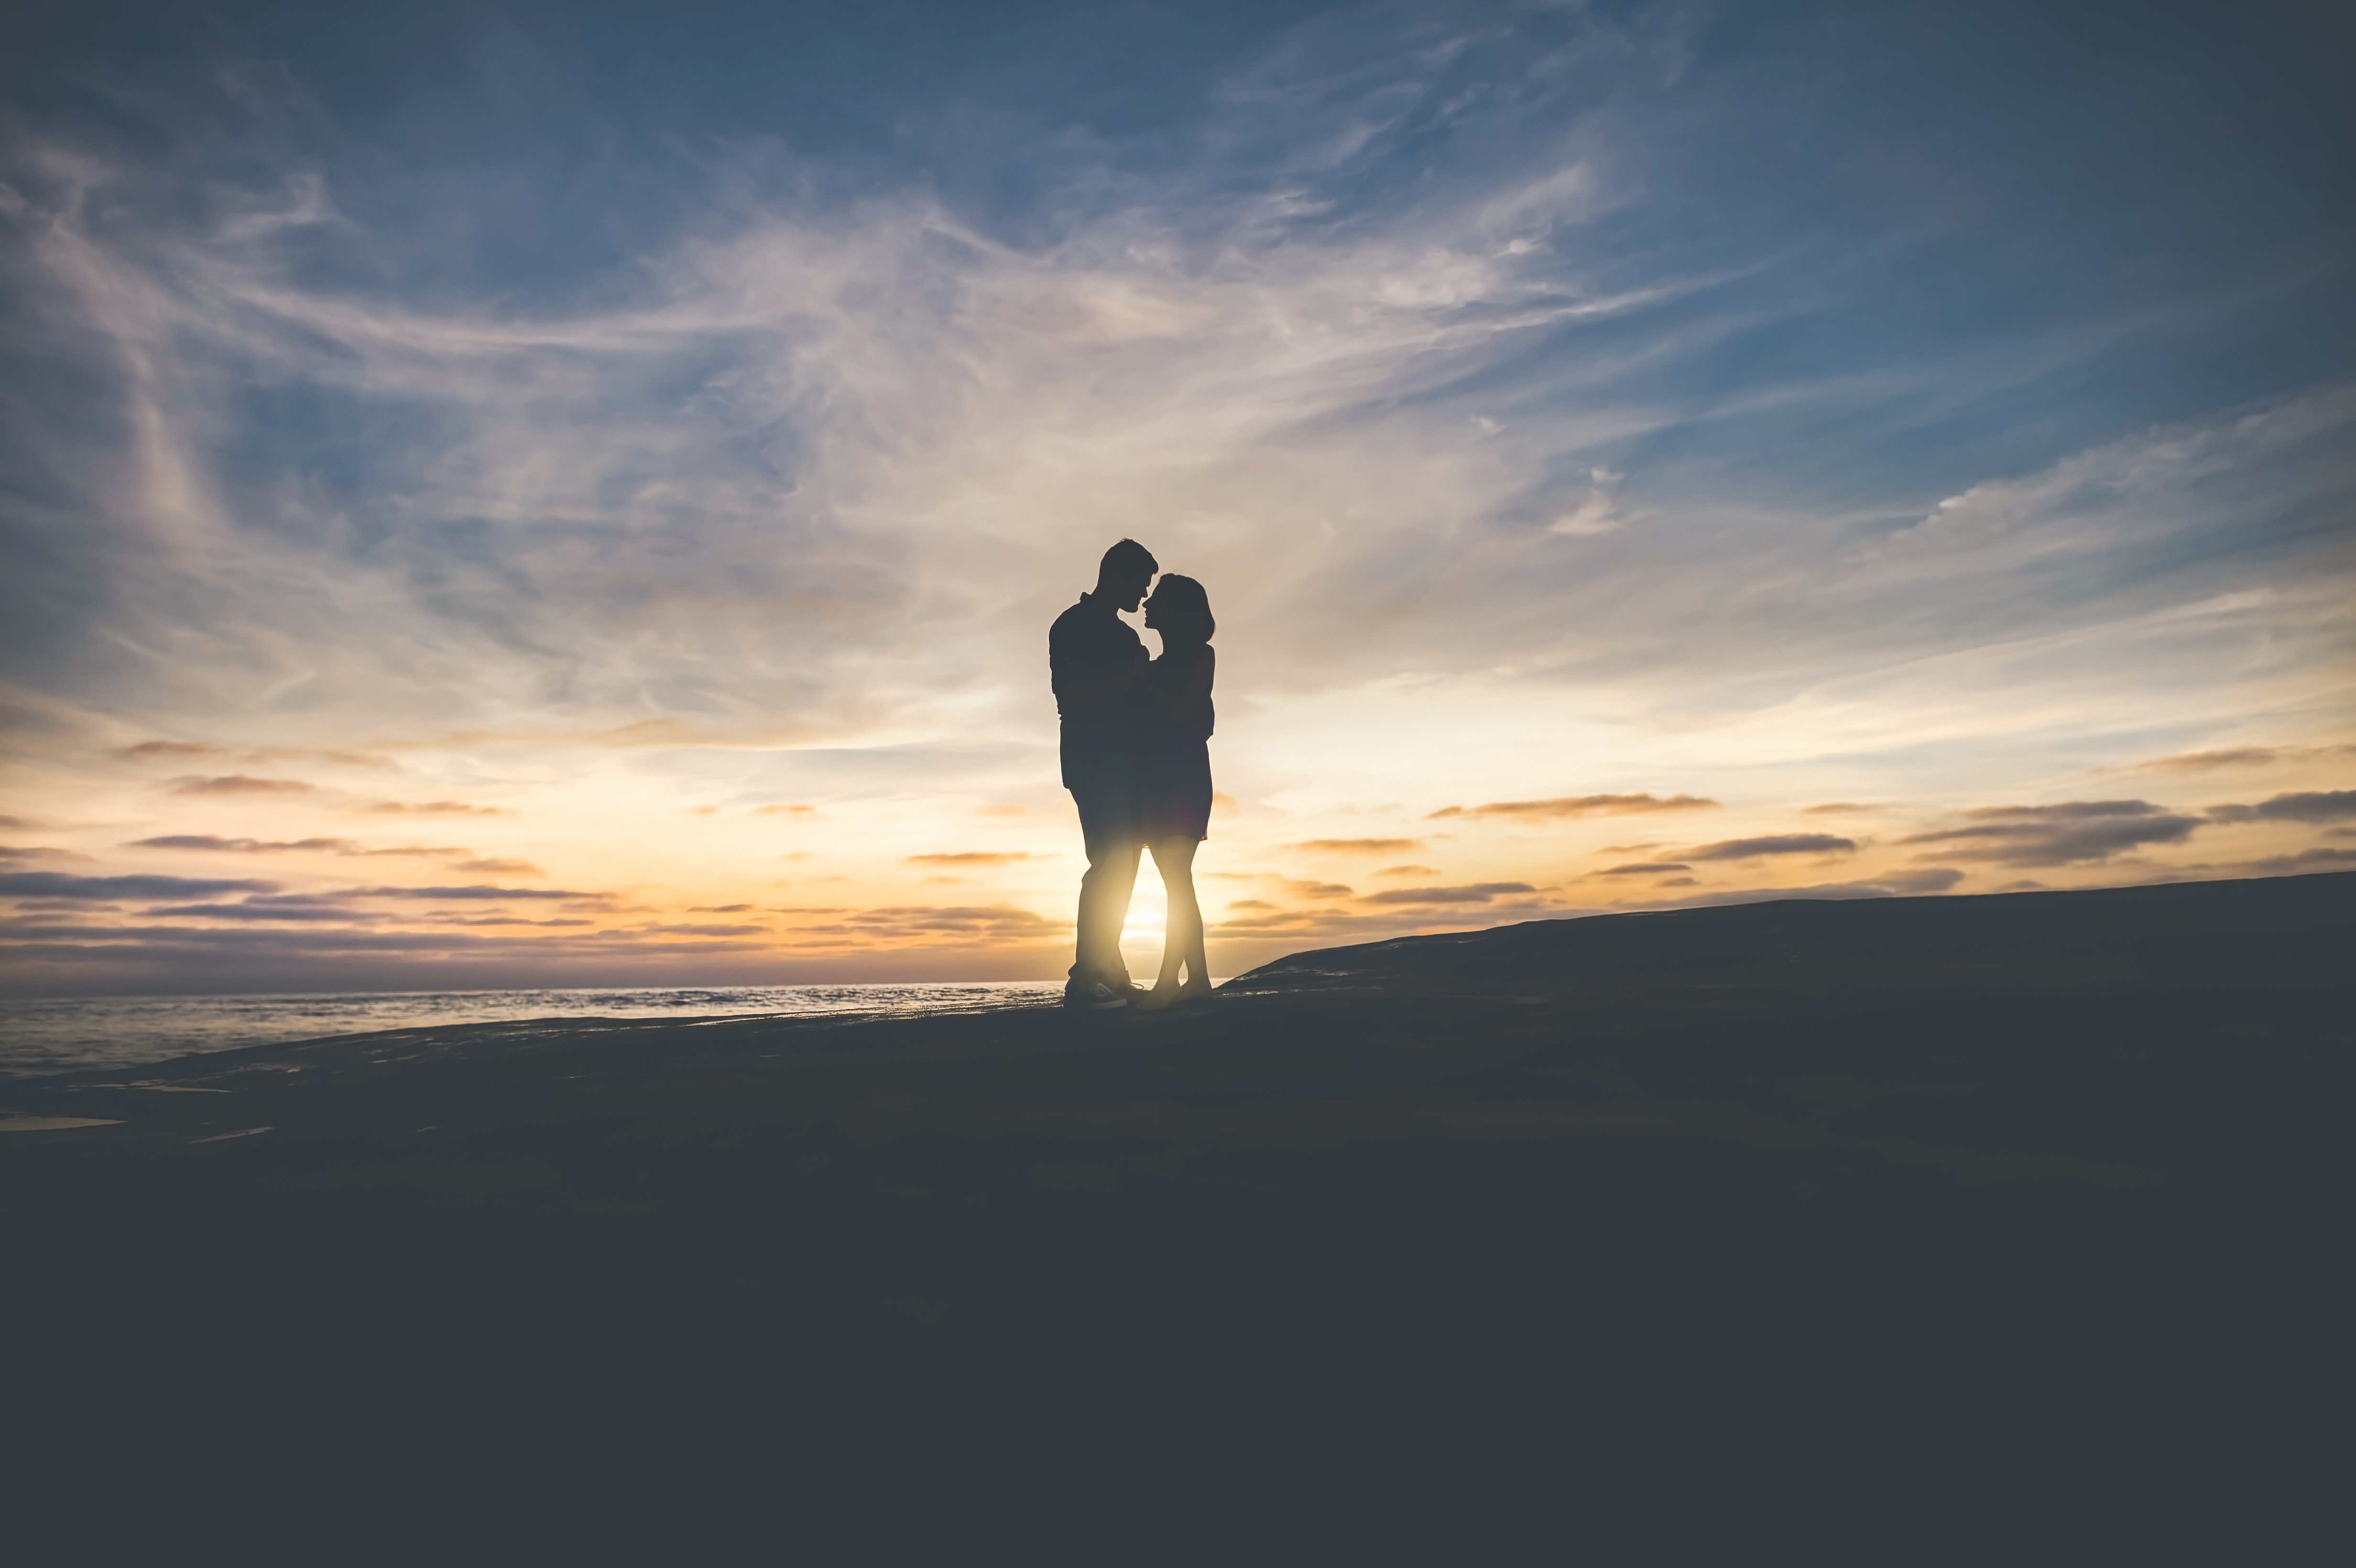 Beach scene of a young couple silhouetted against a sunset sky